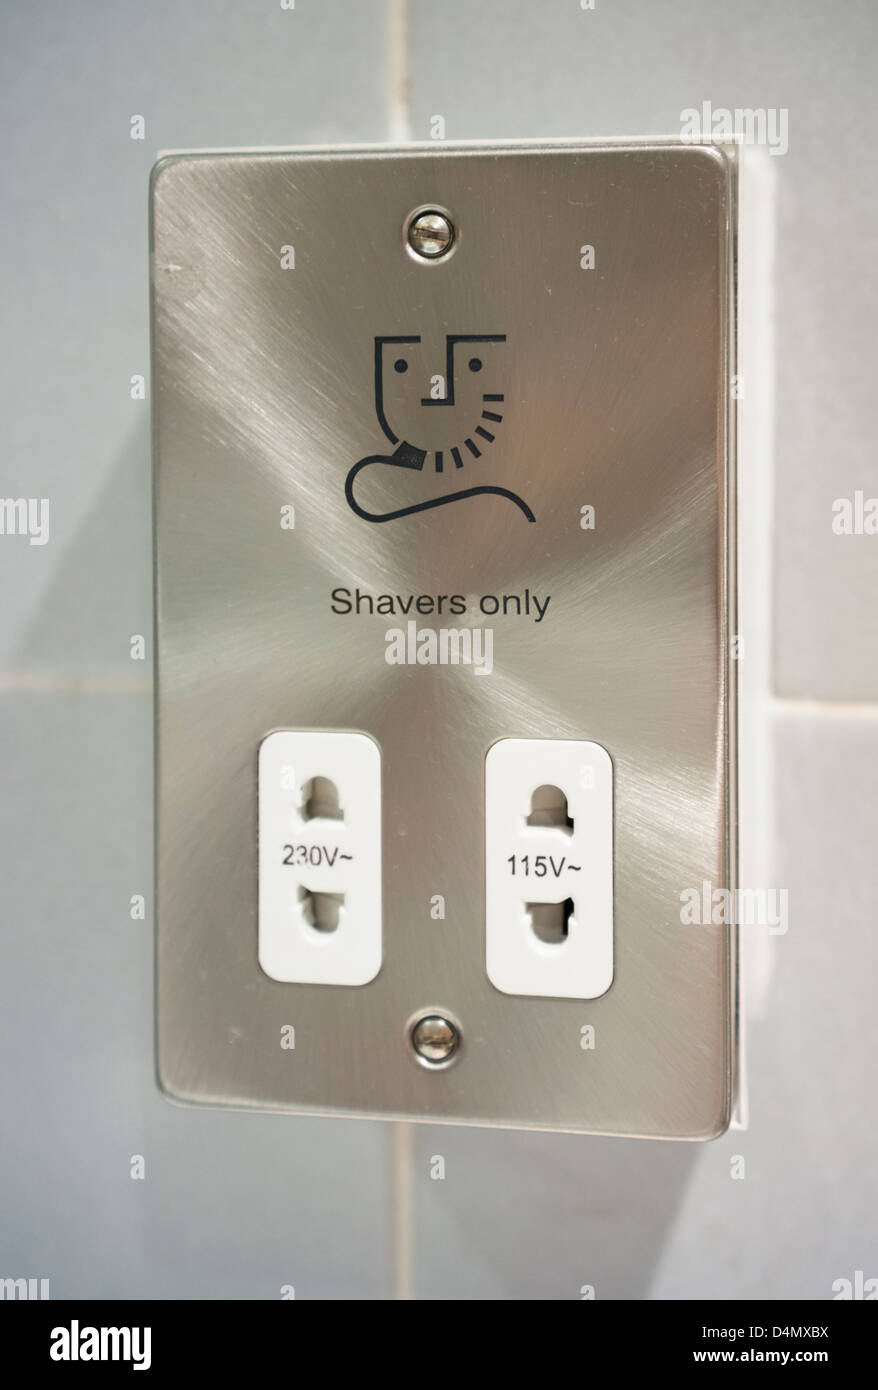 Electric shaver socket and charging point. - Stock Image